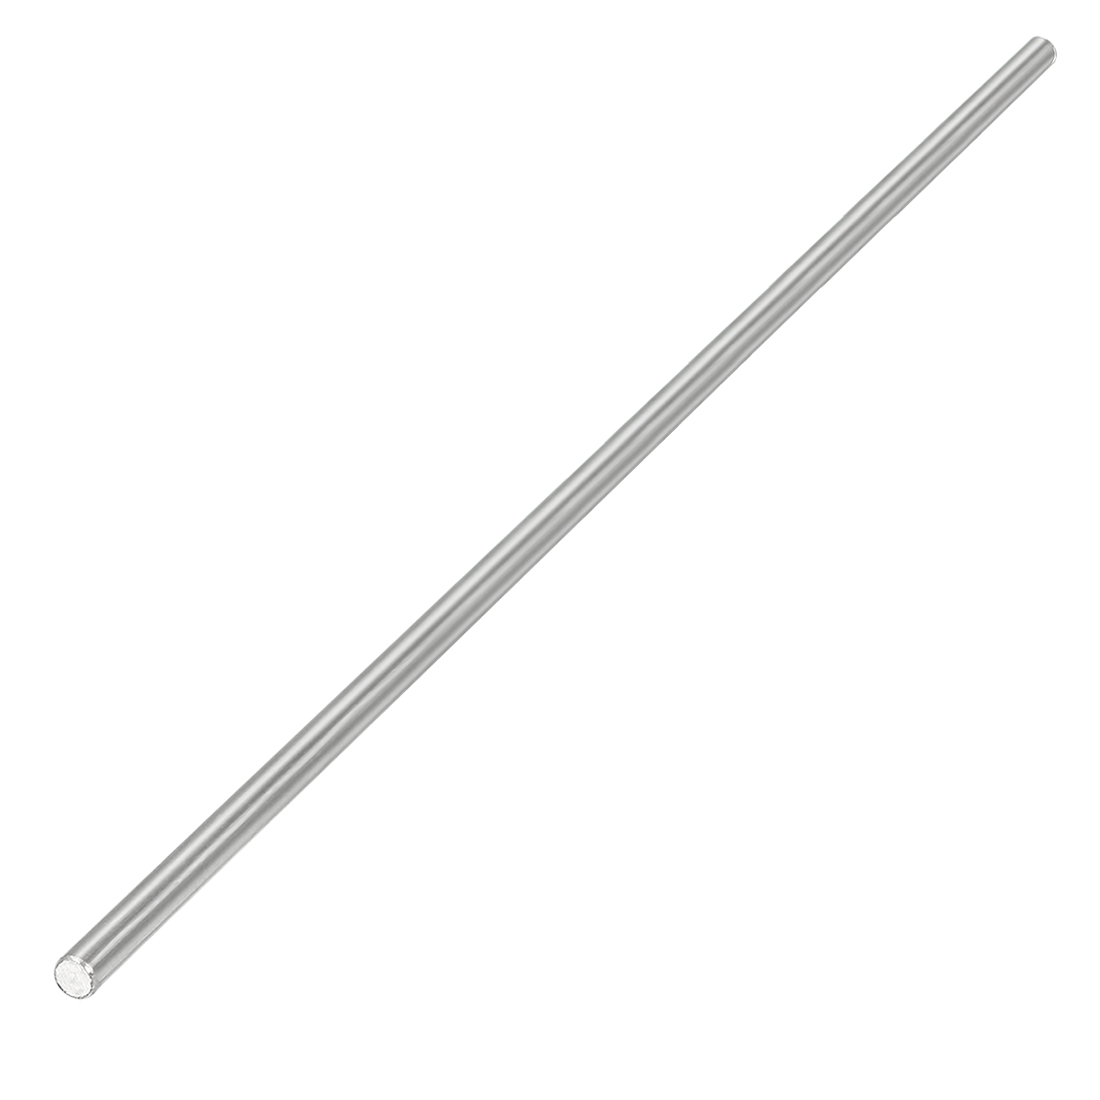 Stainless Steel Round Shaft Rod Axle 2mm x 170mm for RC Toy Car